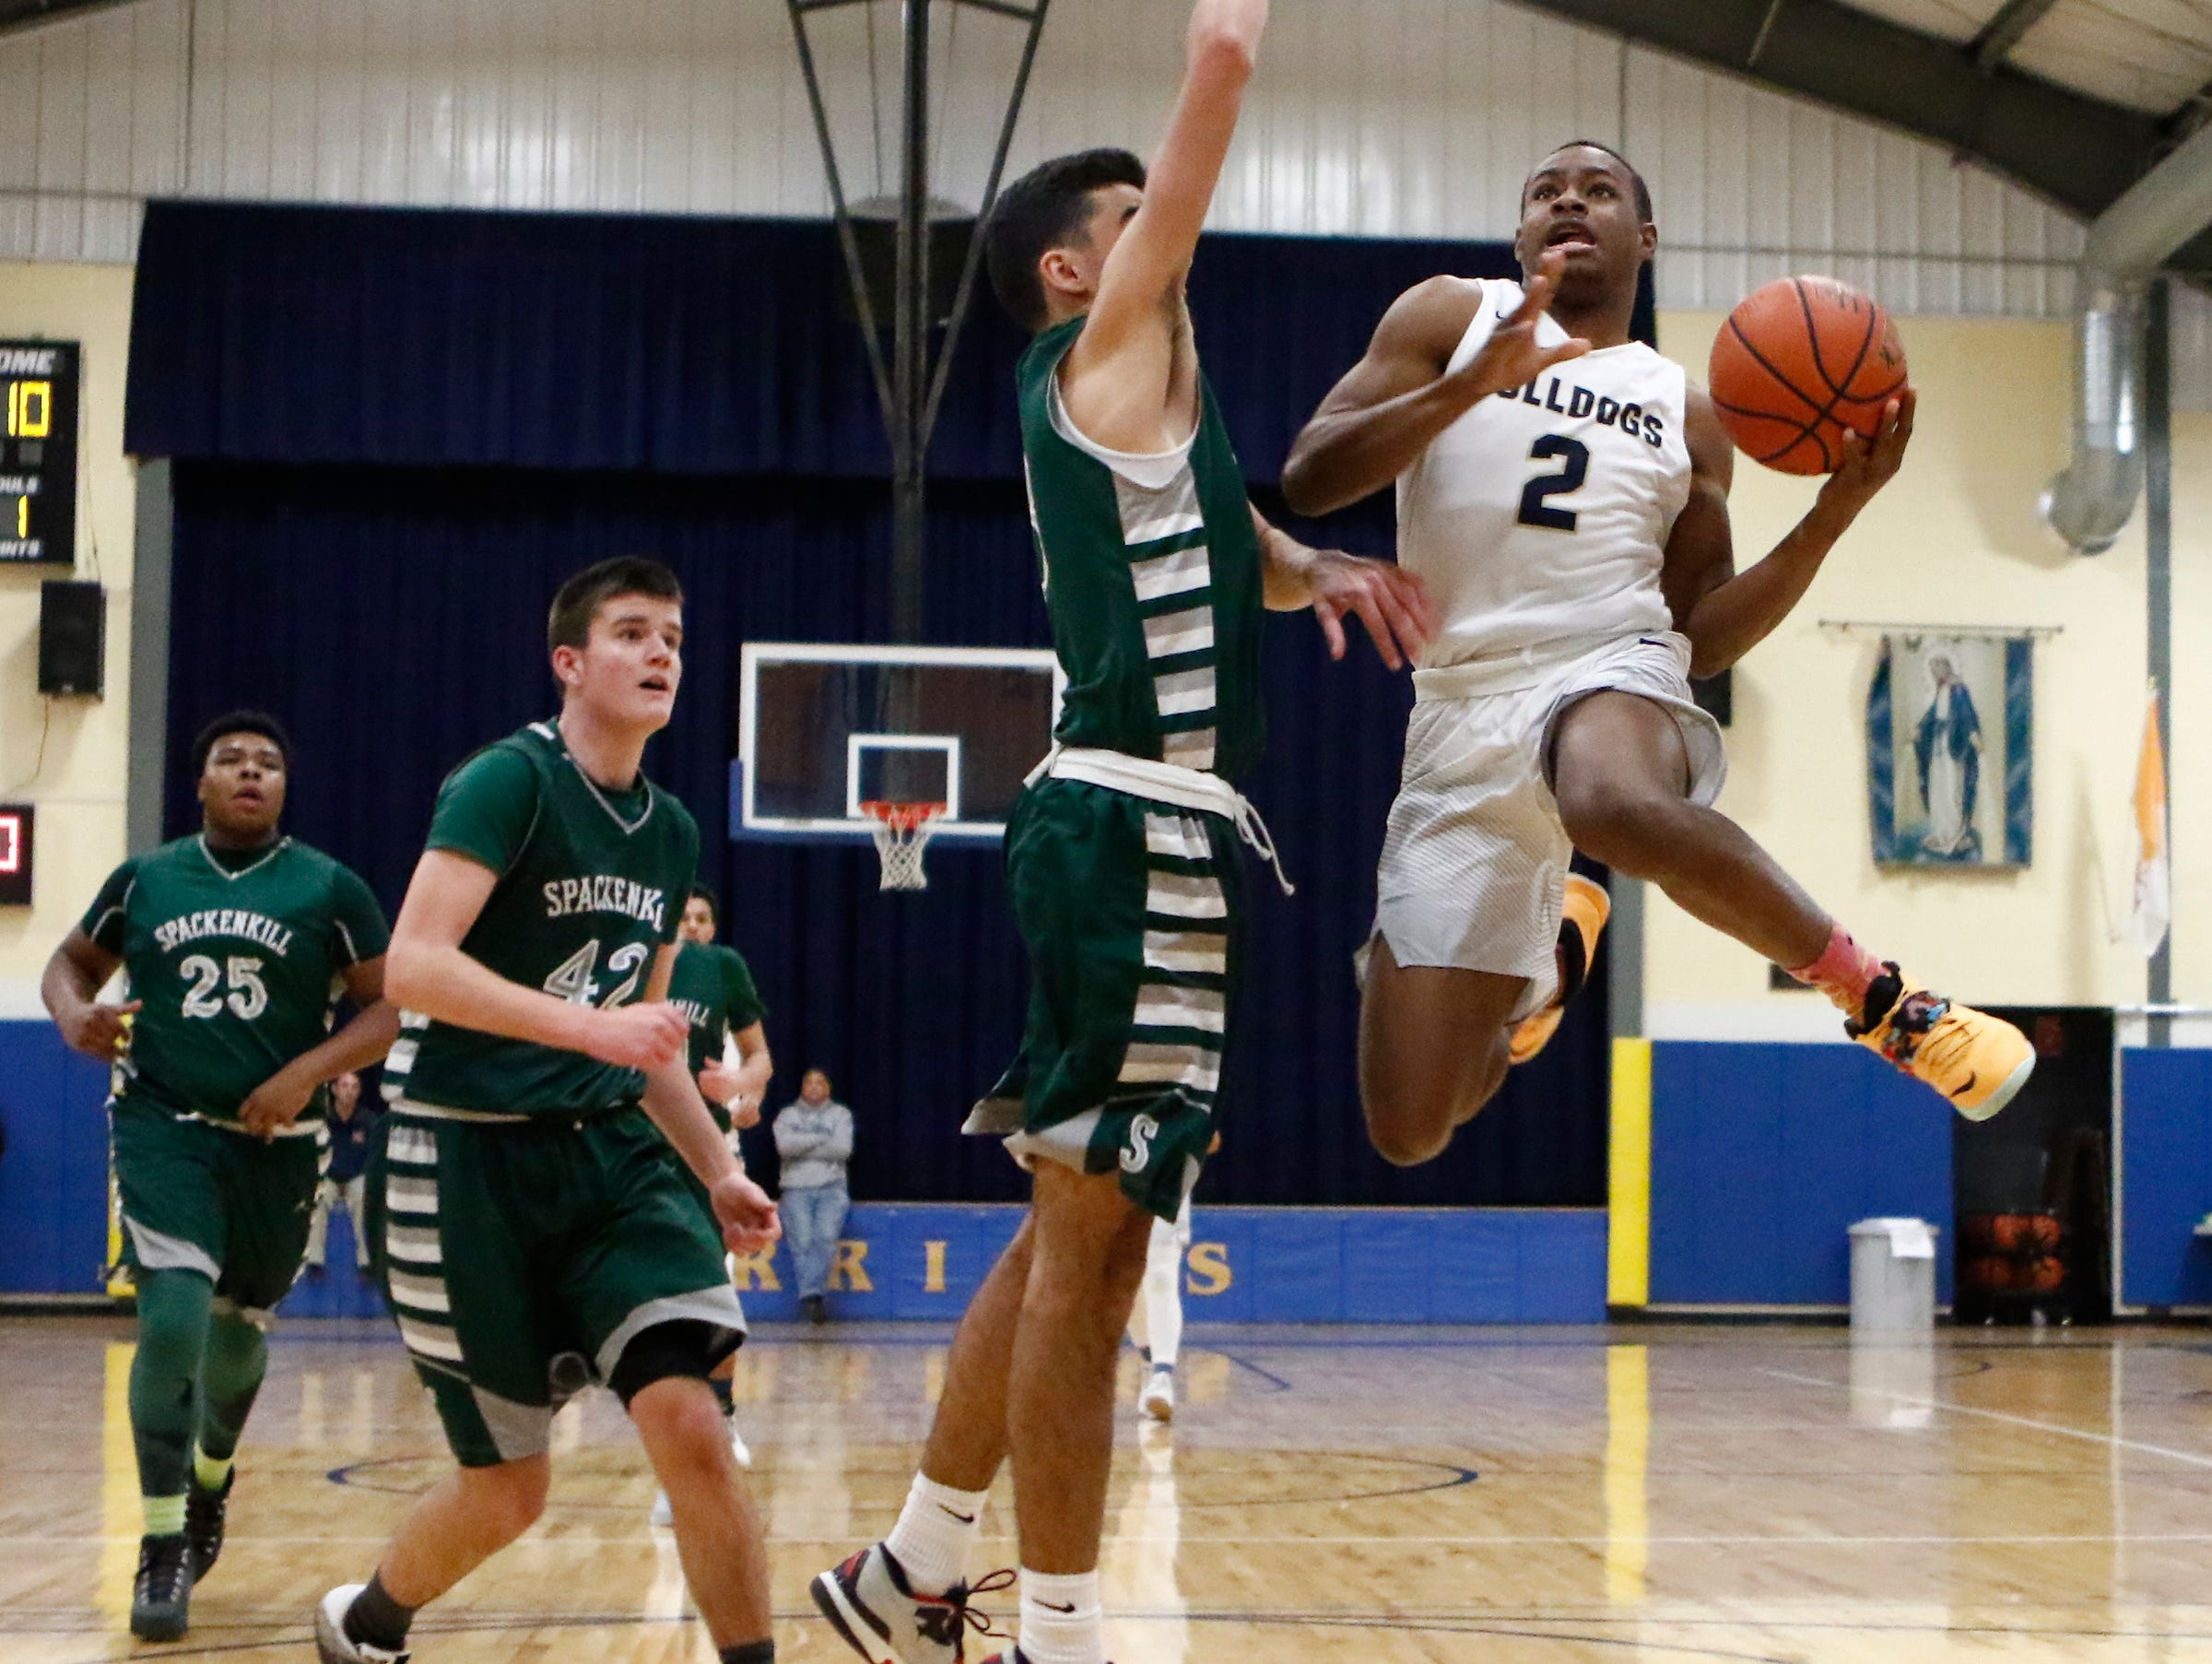 Beacon's Alex Bensen (3) drives against Spackenkill's Hayden Peek (3) left, in the championship game of the Duane Davis memorial basketball tournament at Our Lady of Lourdes High School in Poughkeepsie on Saturday, December 31, 2016.